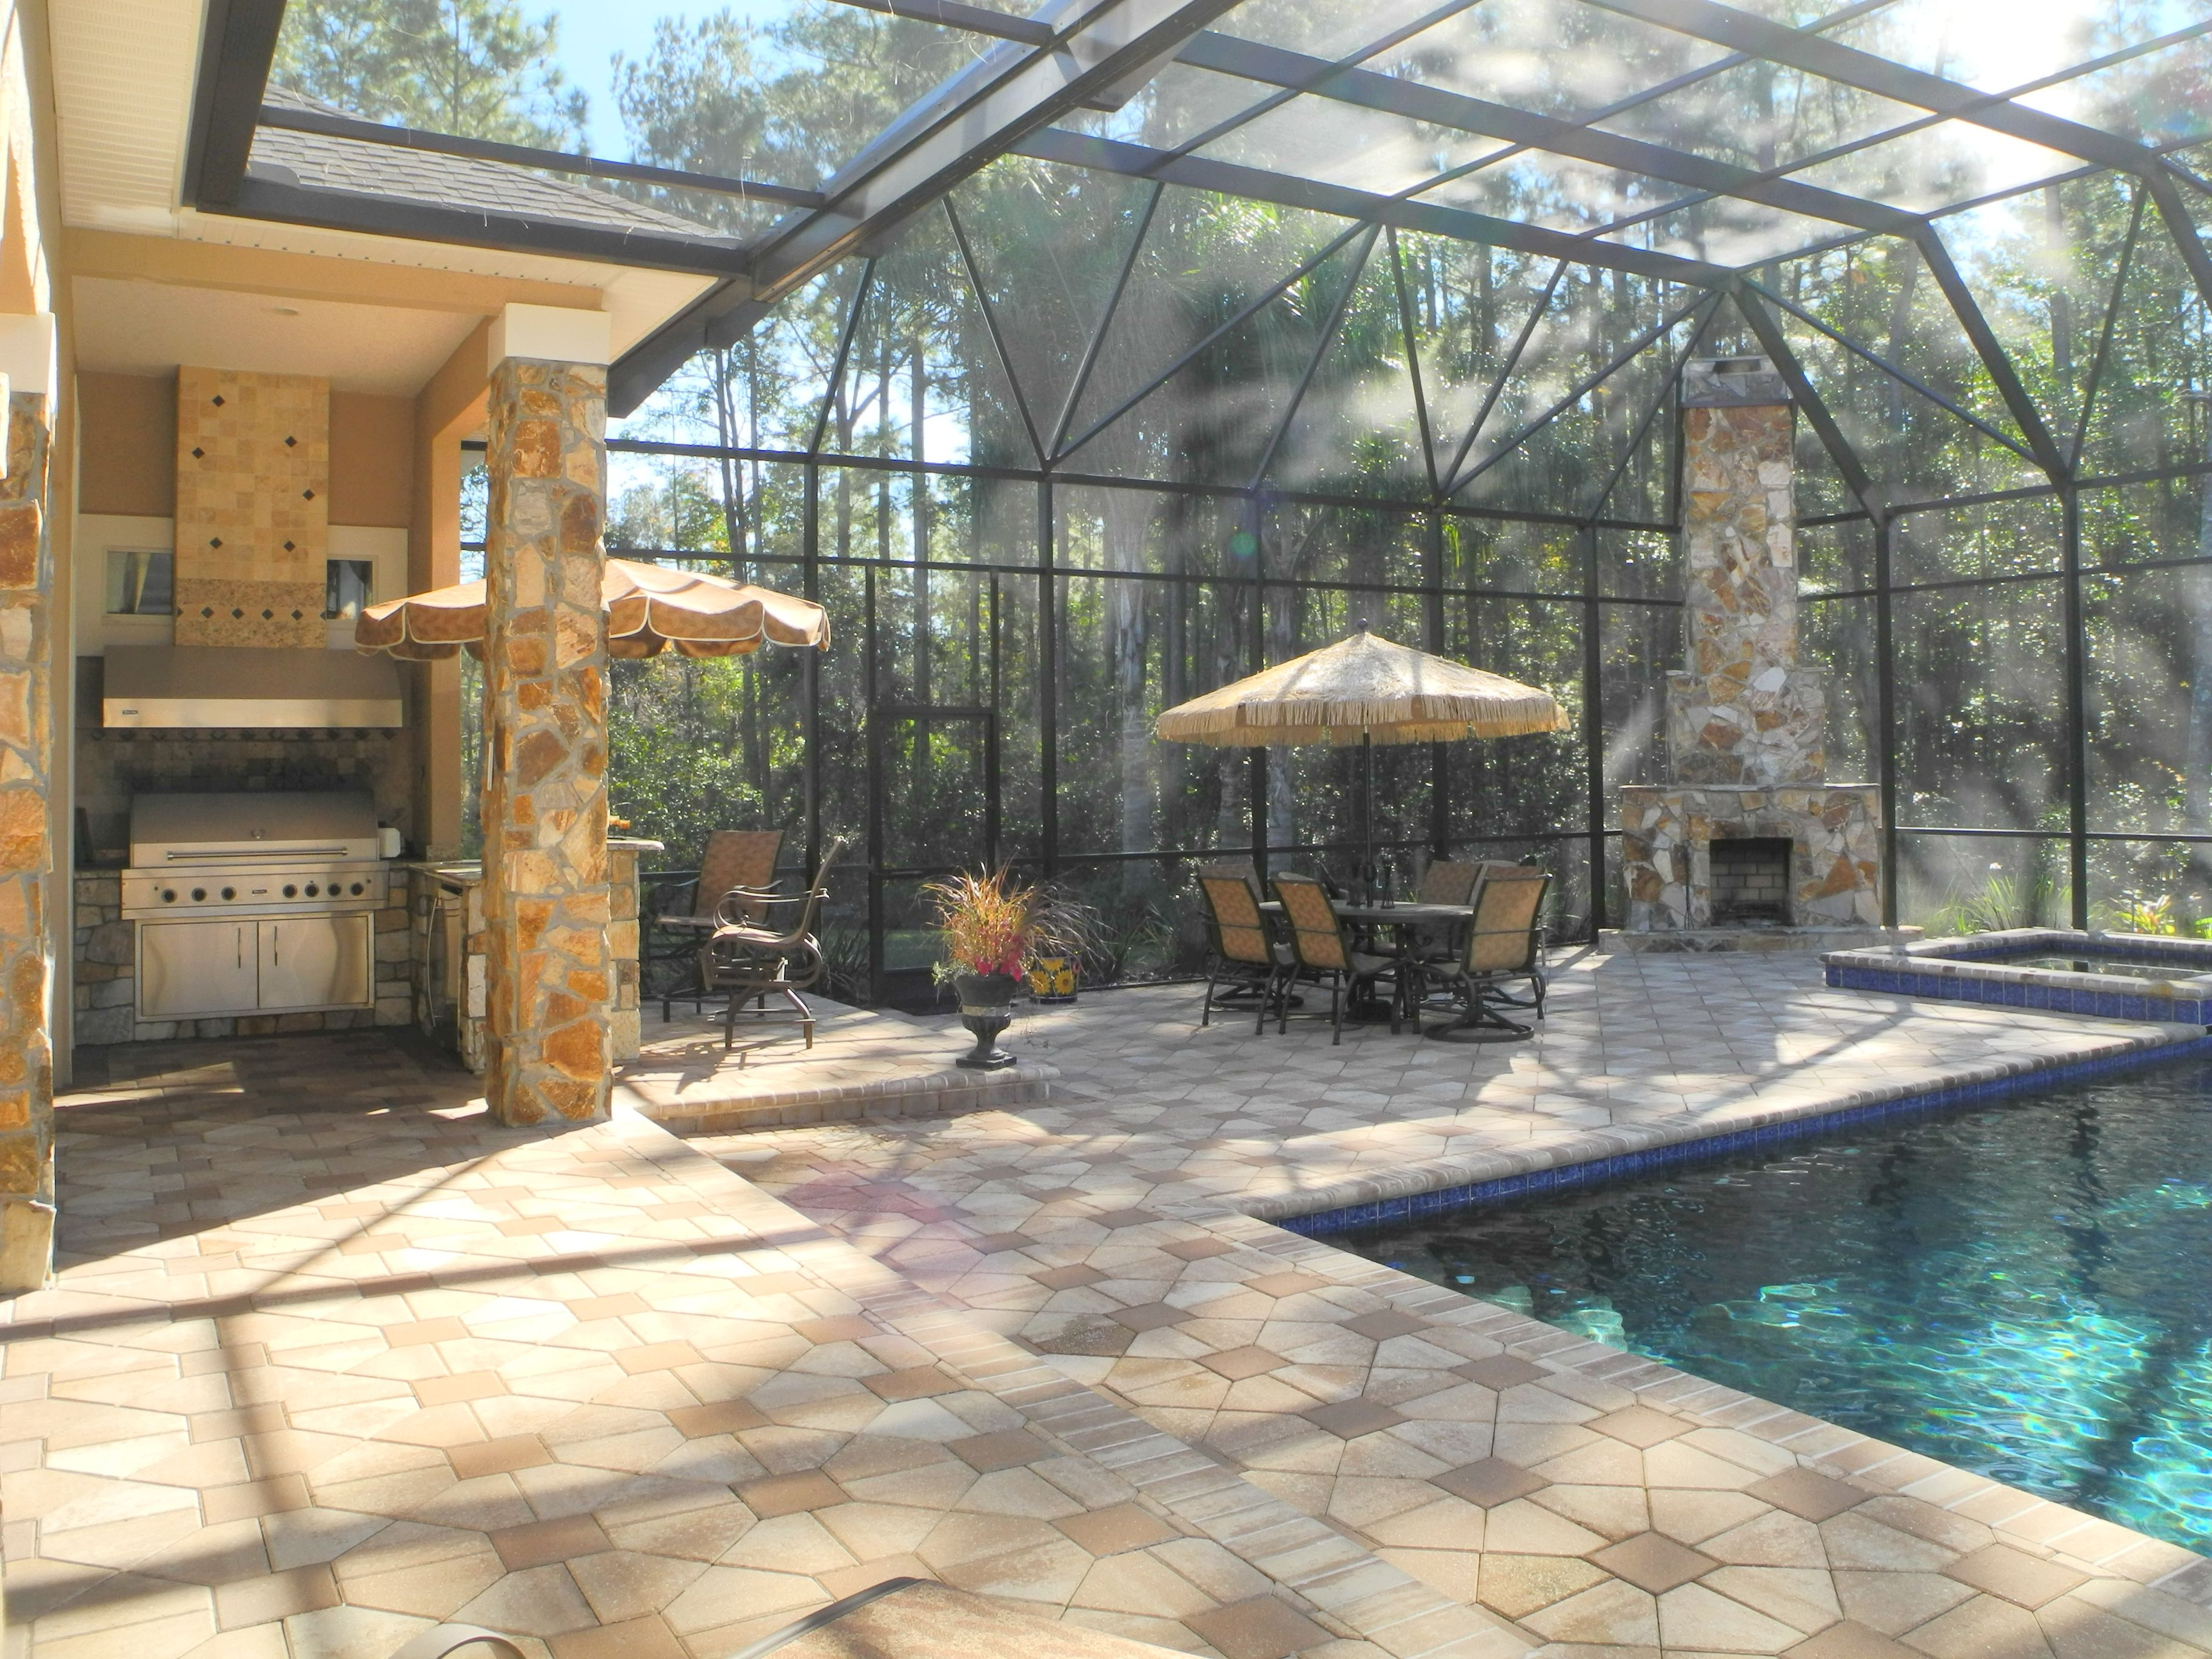 Stone outdoor kitchen with matching stone columns and wood burning